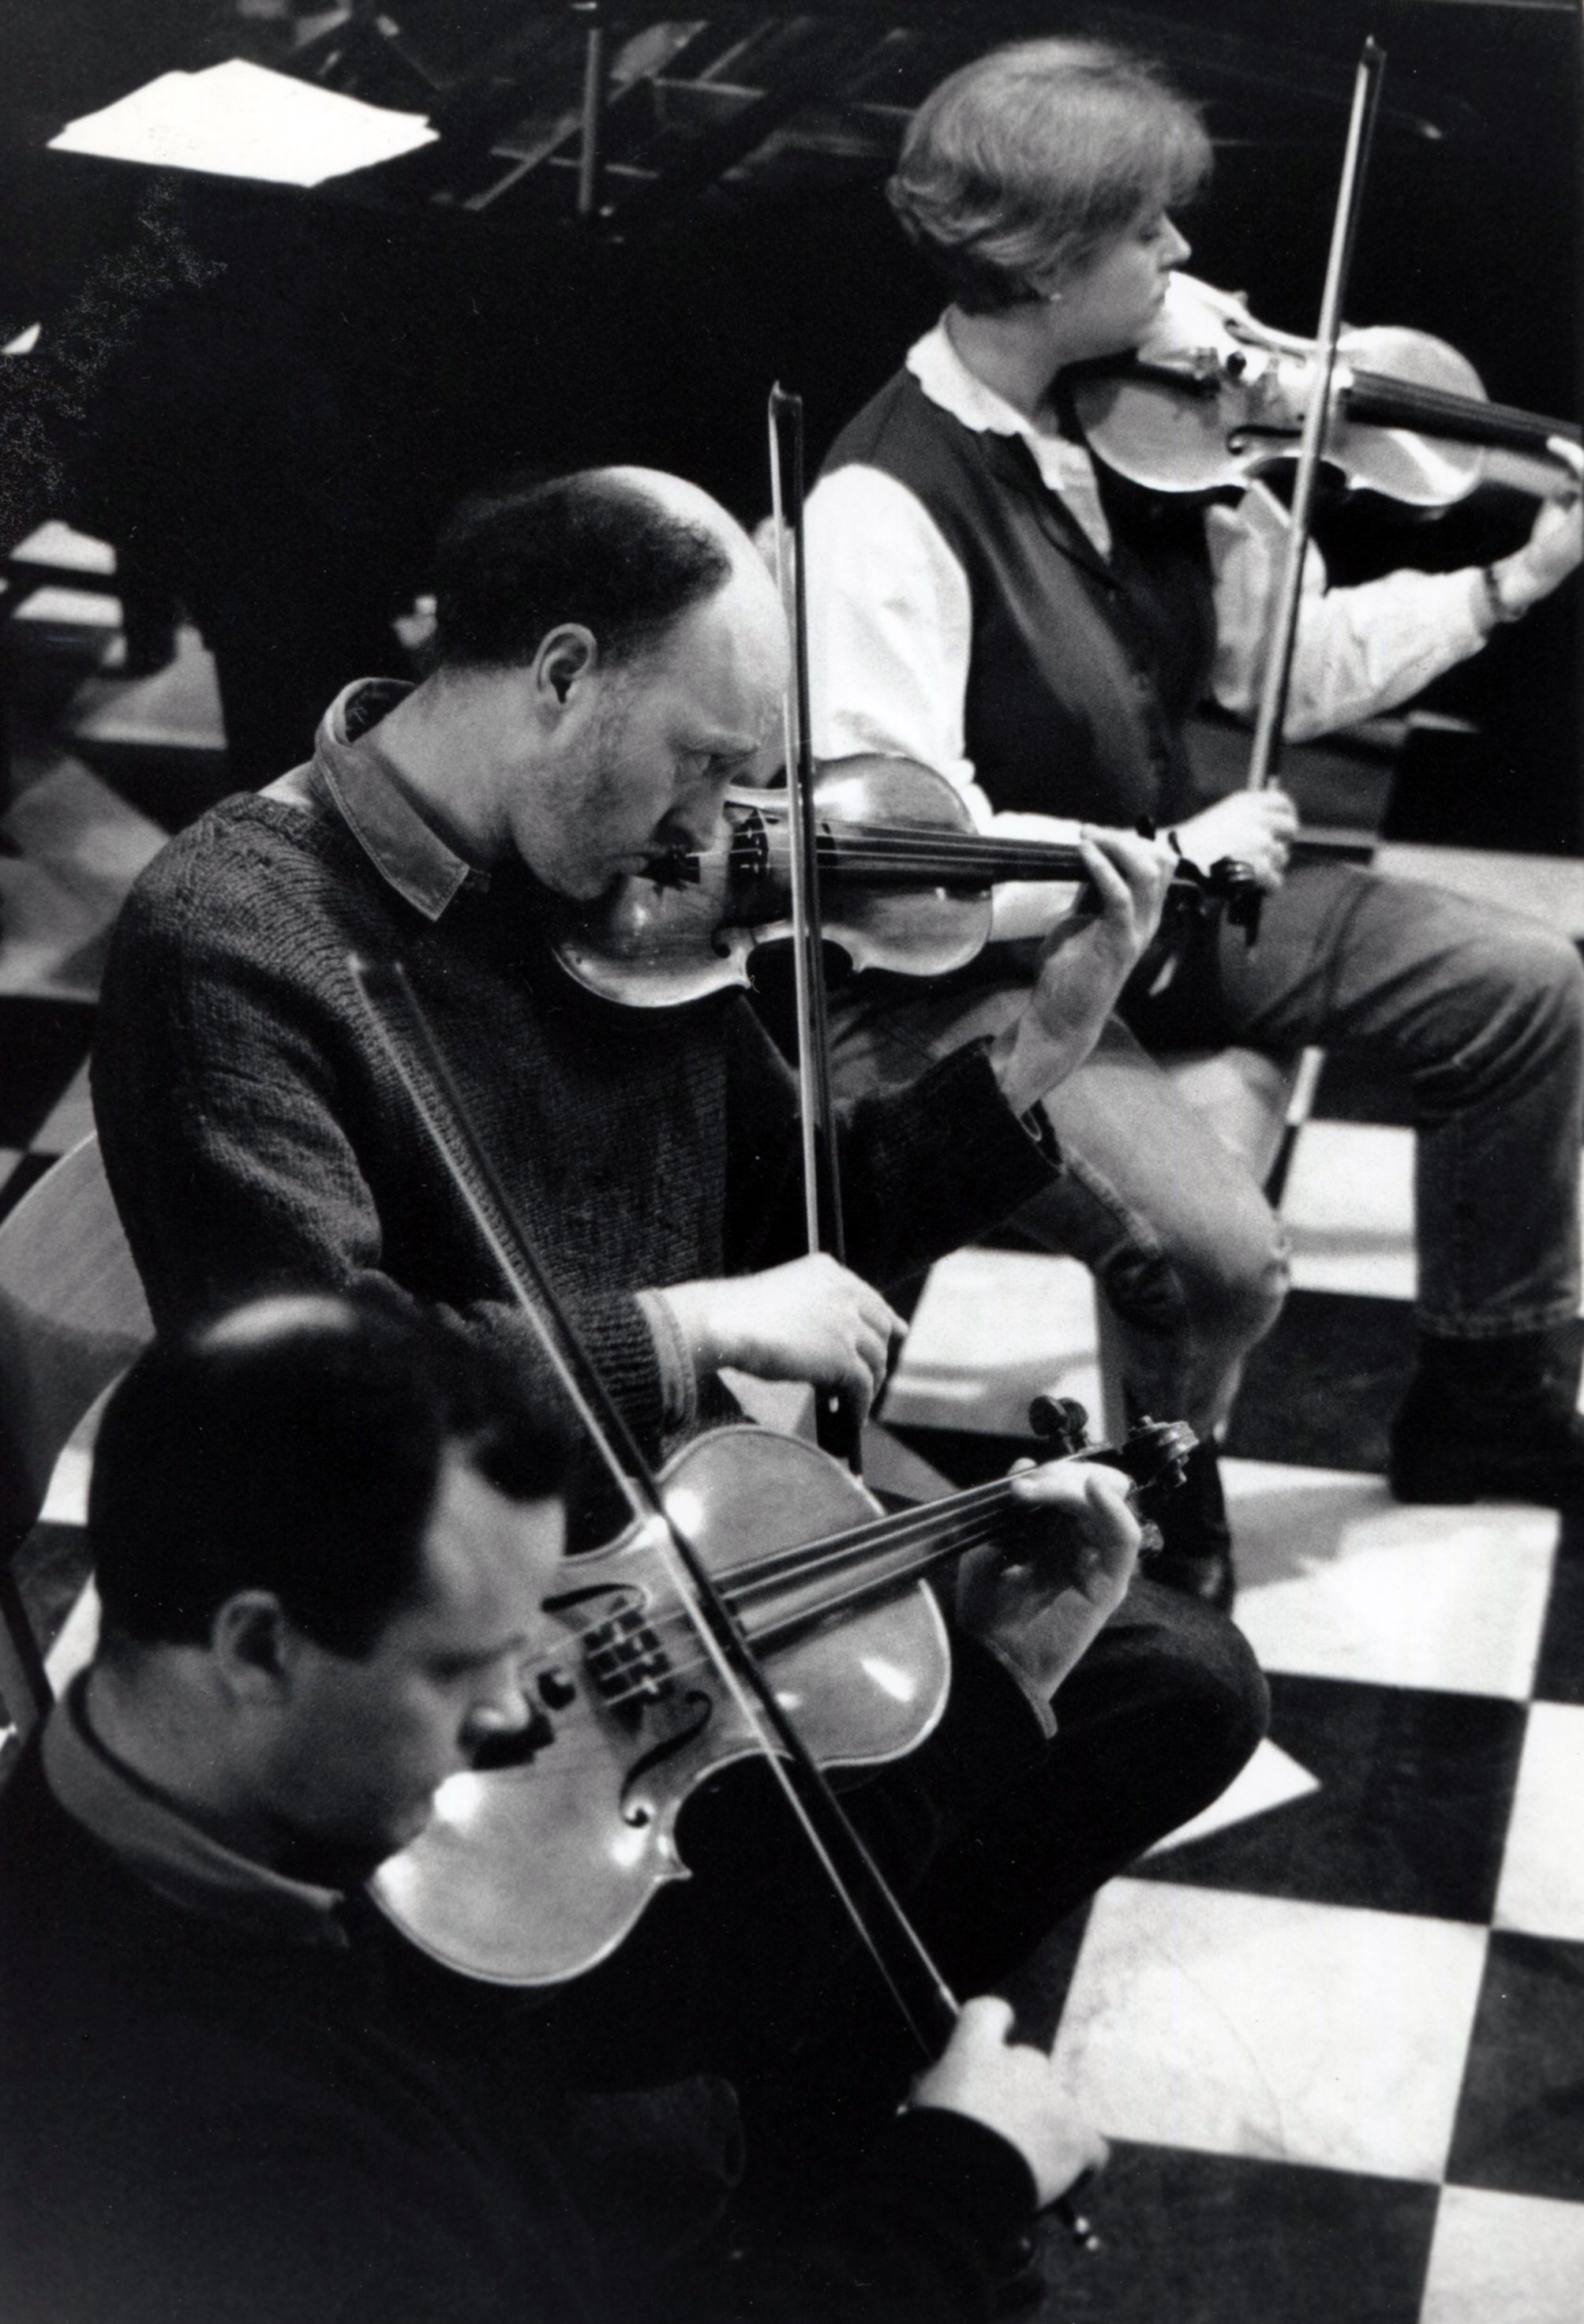 1995 St Giles 25.02.95 string section (new scan).jpg